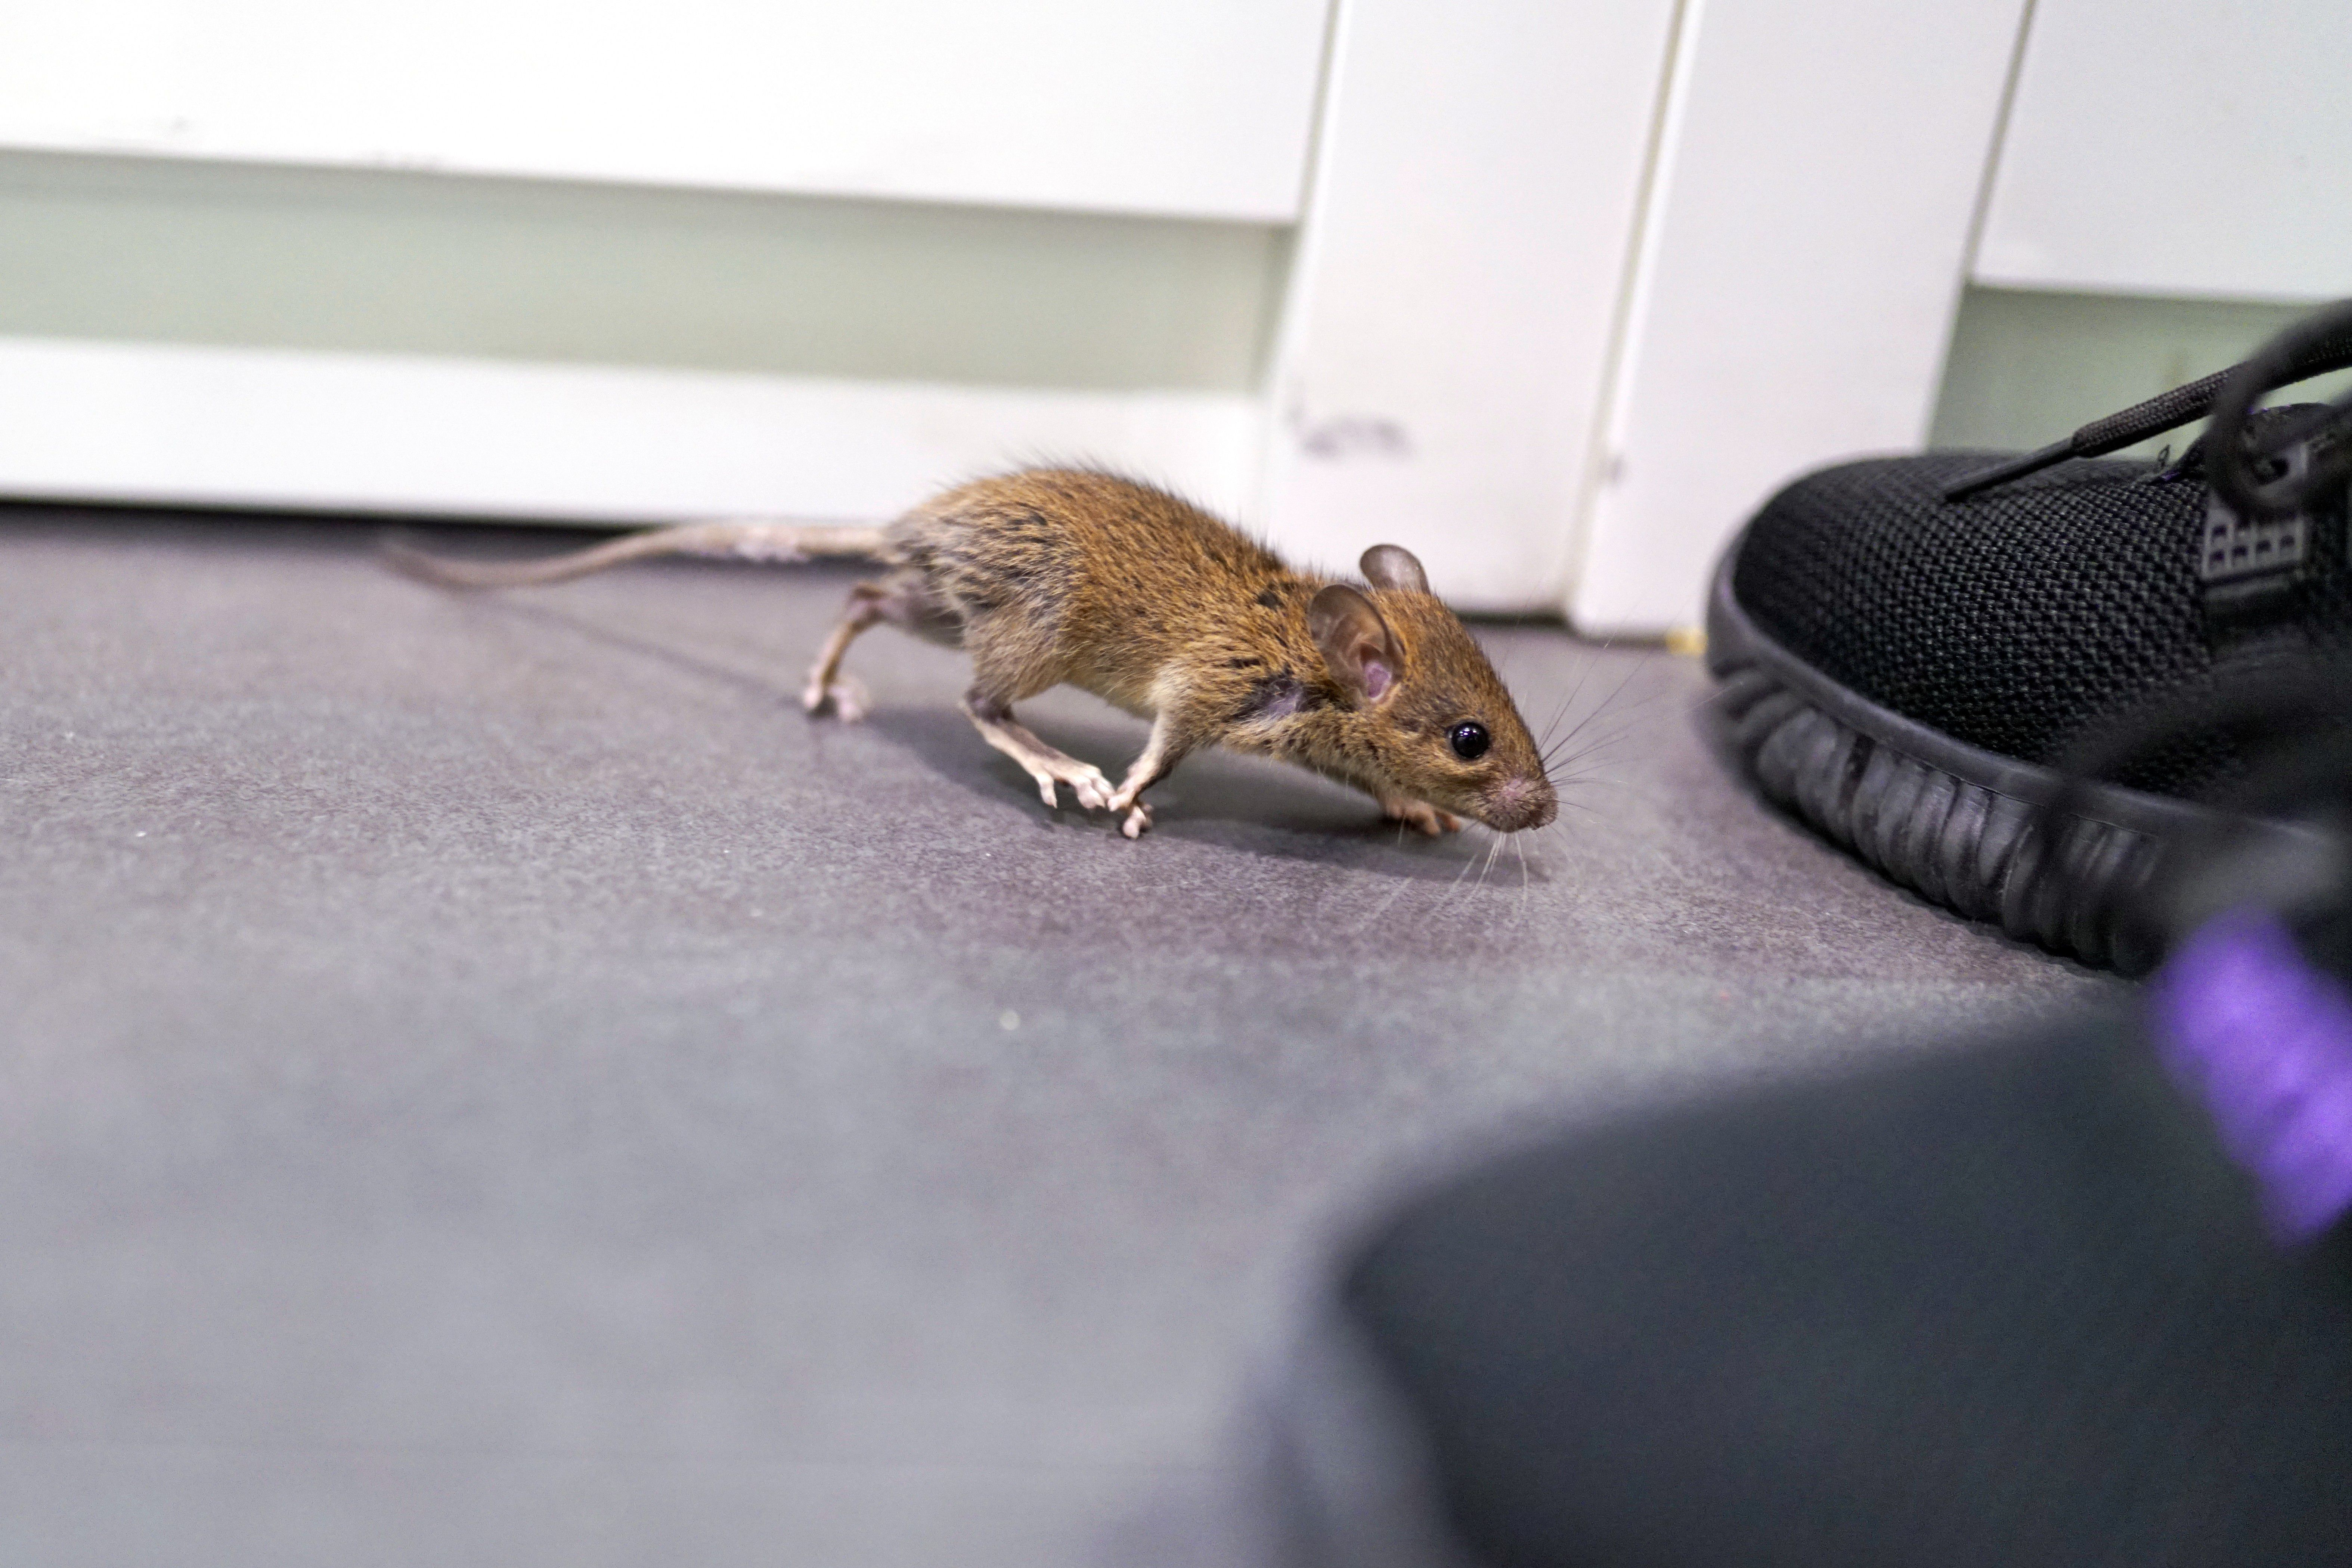 How To Get Rid Of A Possum In Your Garage how to get rid of mice in the garage